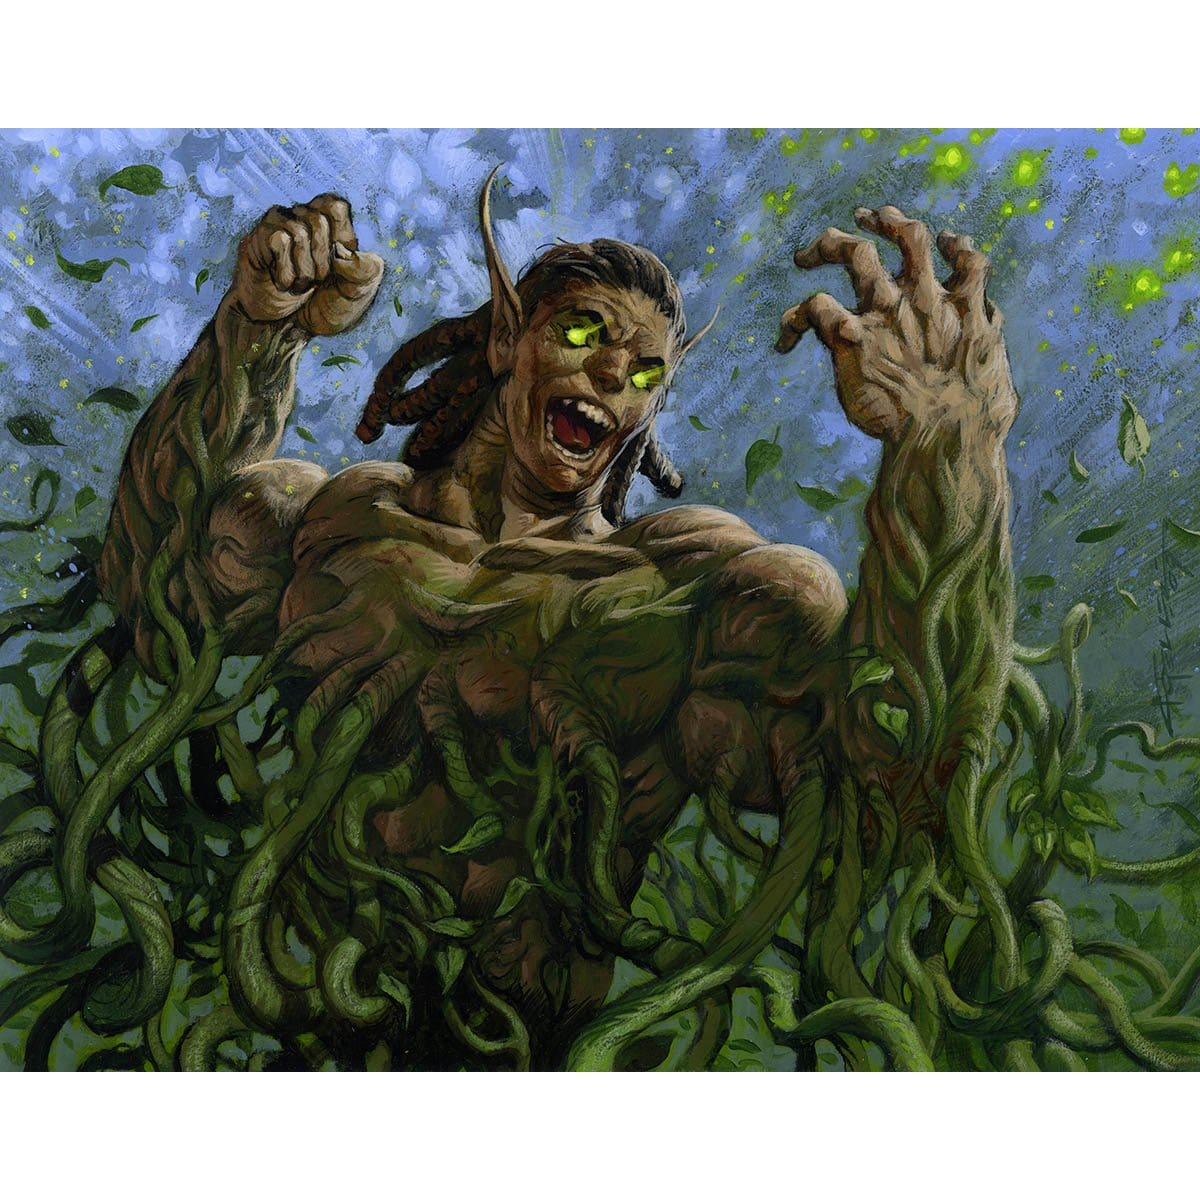 Vines of Vastwood Print - Print - Original Magic Art - Accessories for Magic the Gathering and other card games